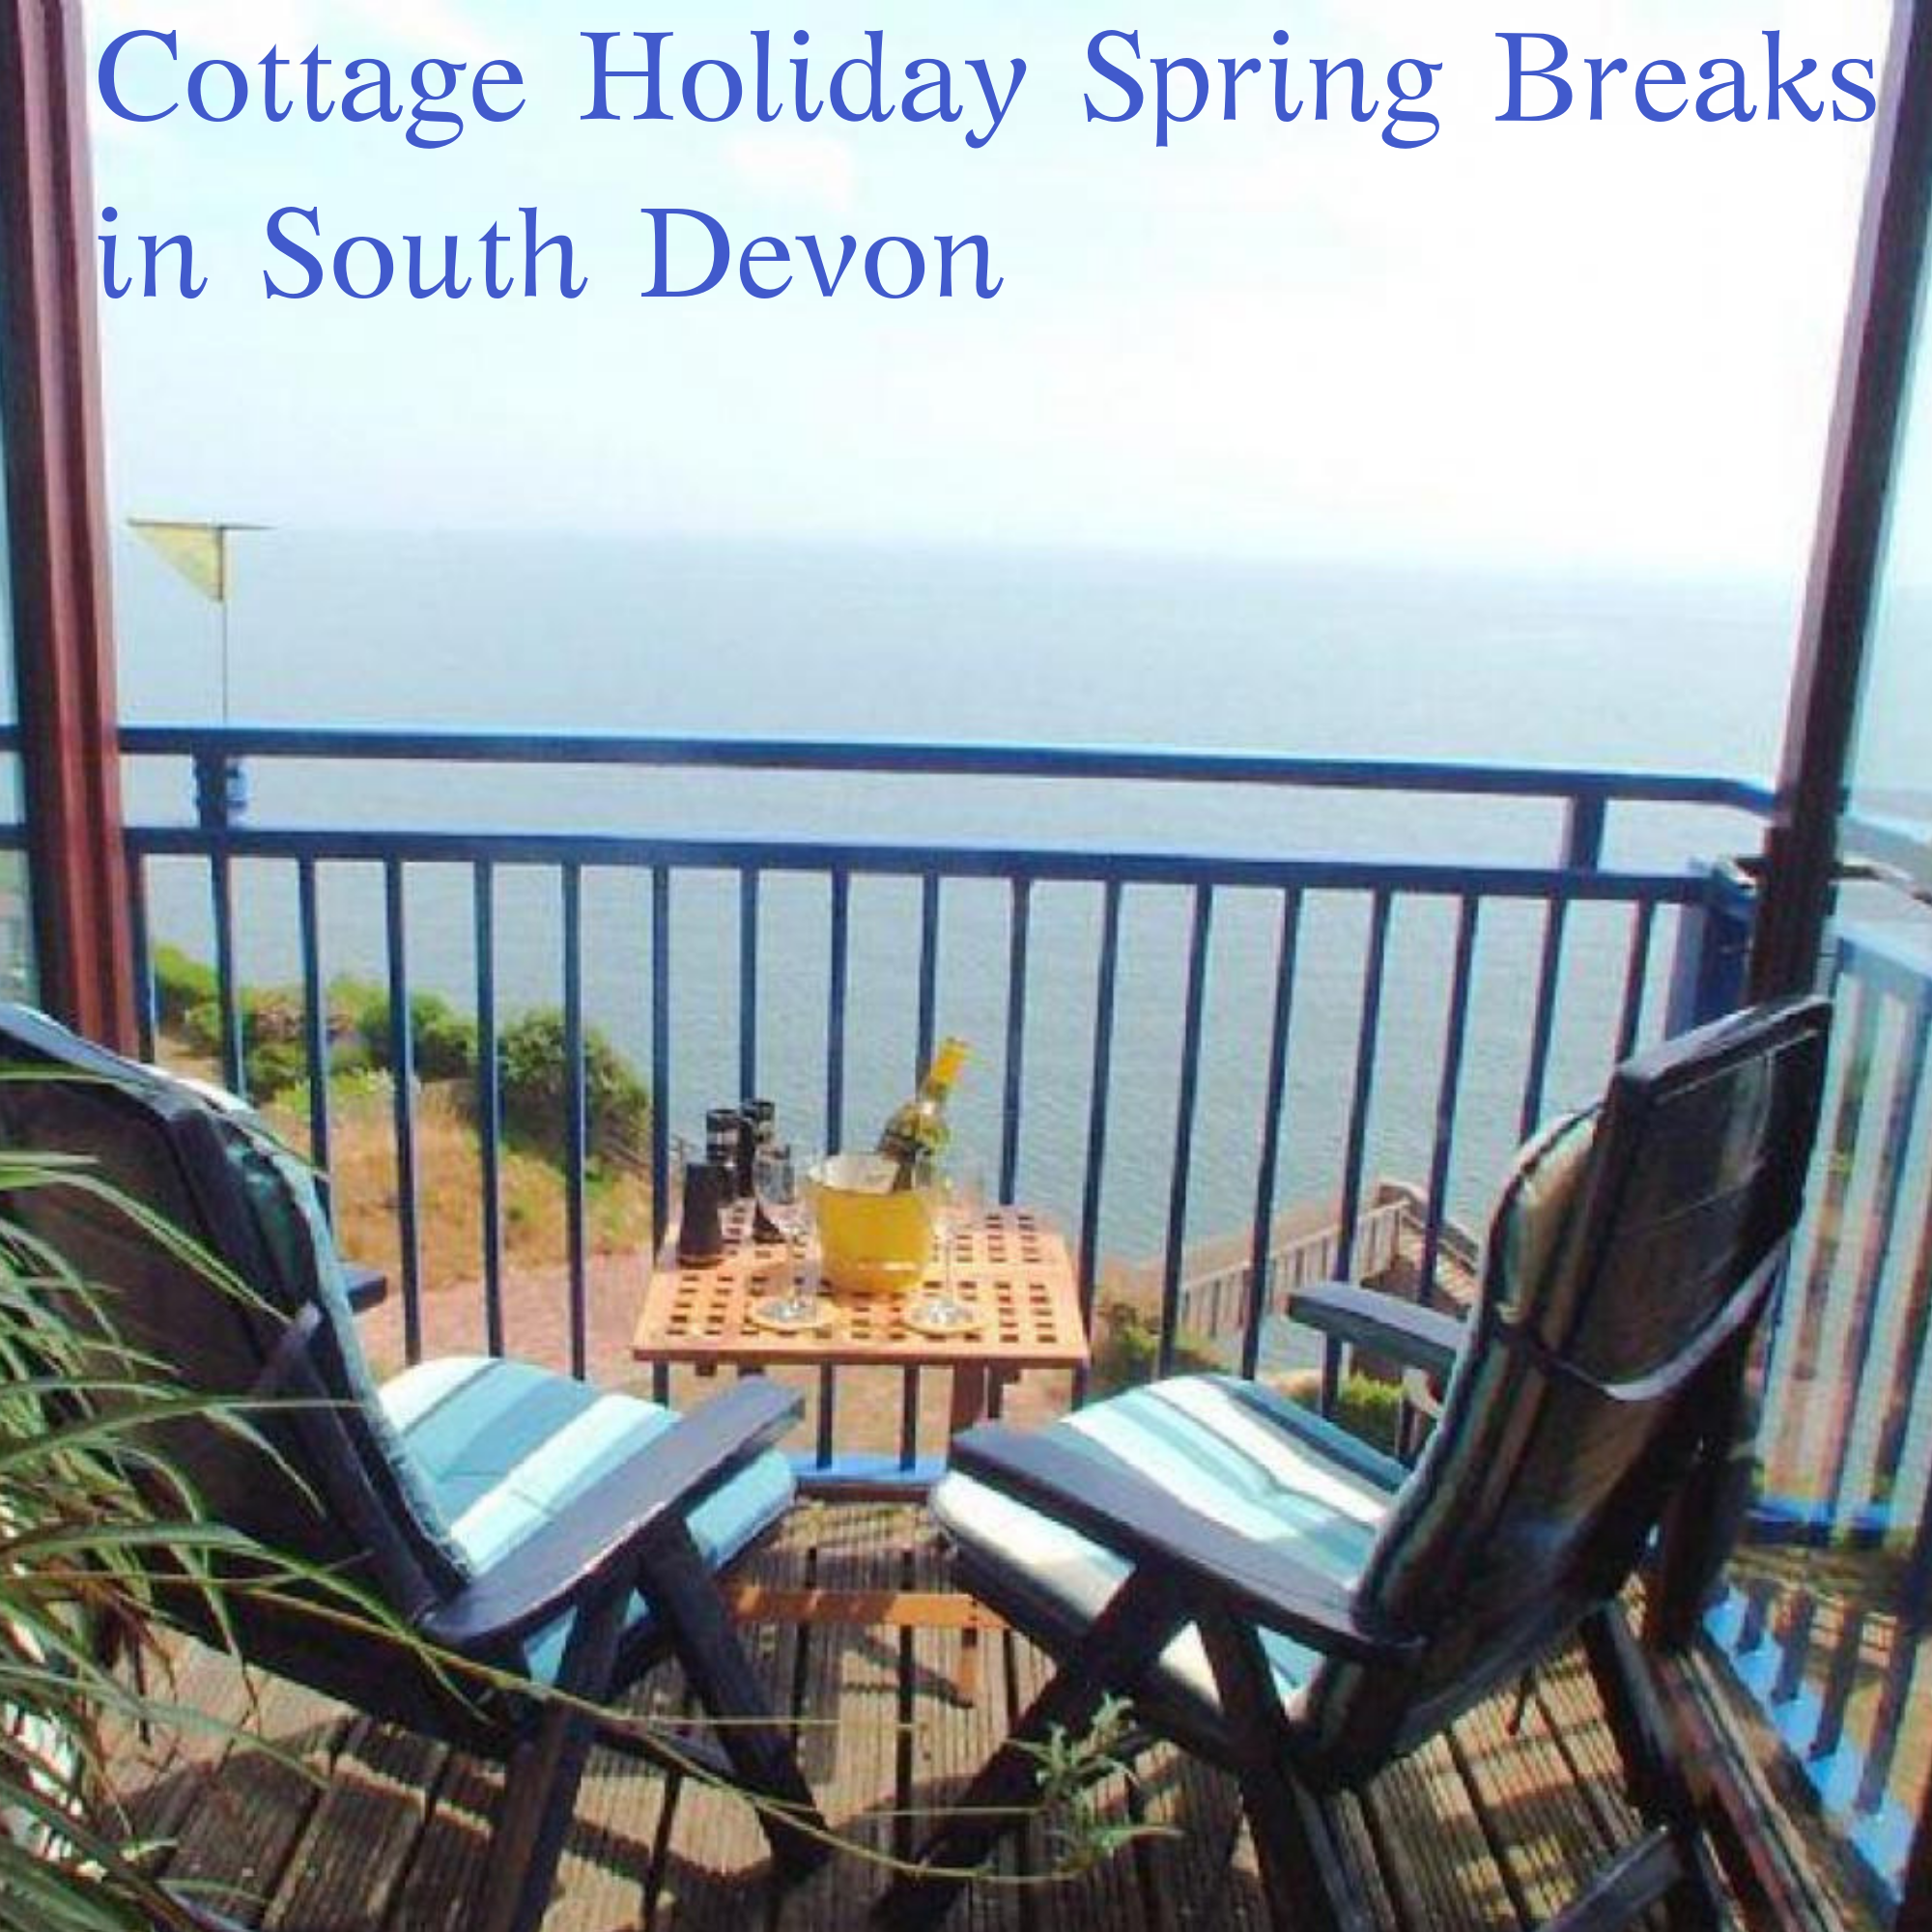 Cottage Holiday Spring Breaks in South Devon